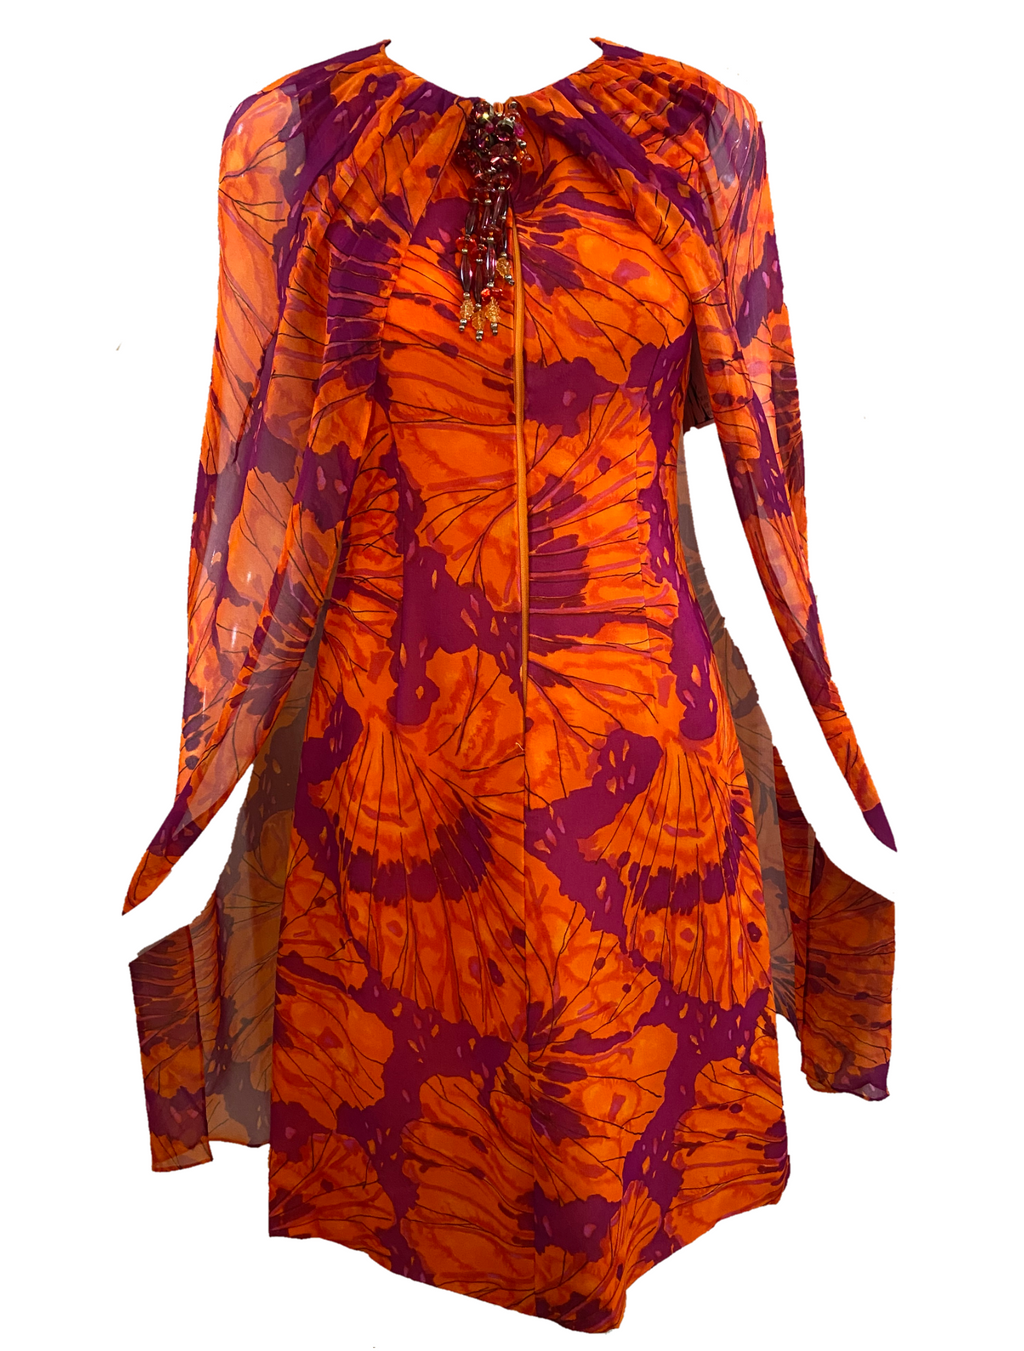 Maurice 60s Dress Purple and Orange Chiffon with Jeweled Ornament FRONT 1 of 5